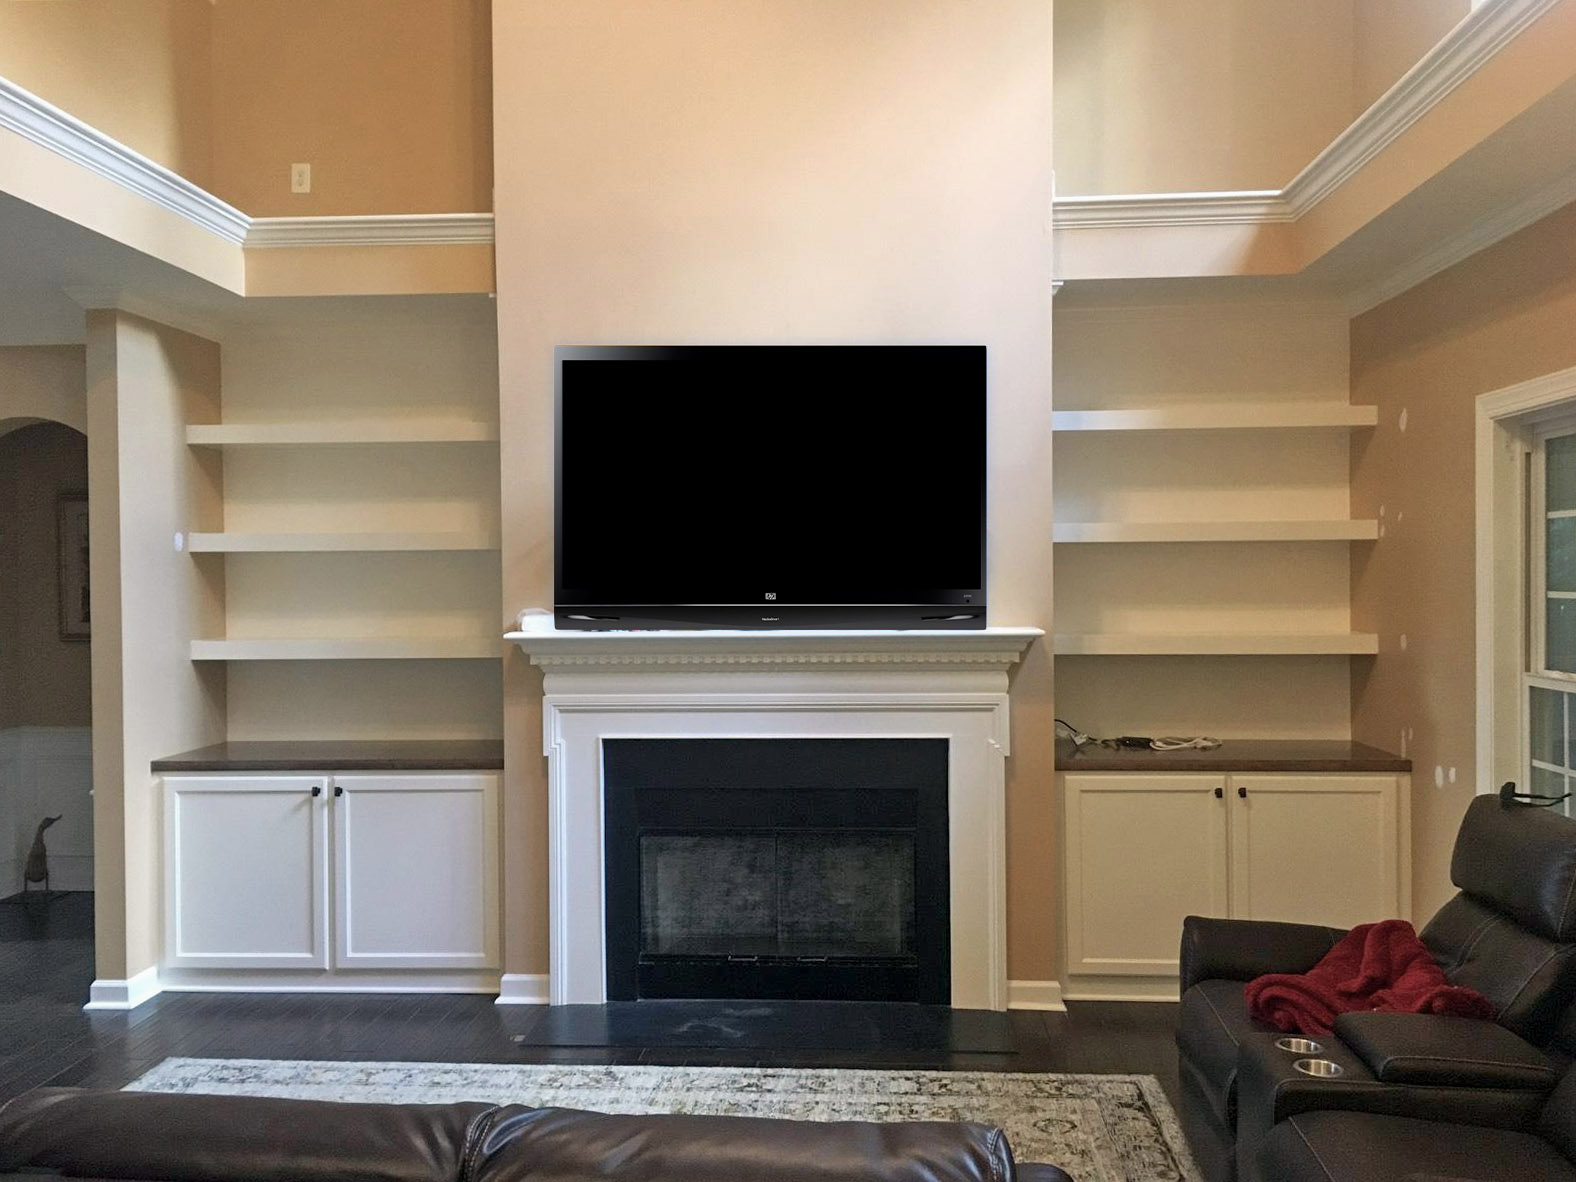 Fireplace Built-Ins with Shaker Doors, Stain Countertops, and Floating Shelves